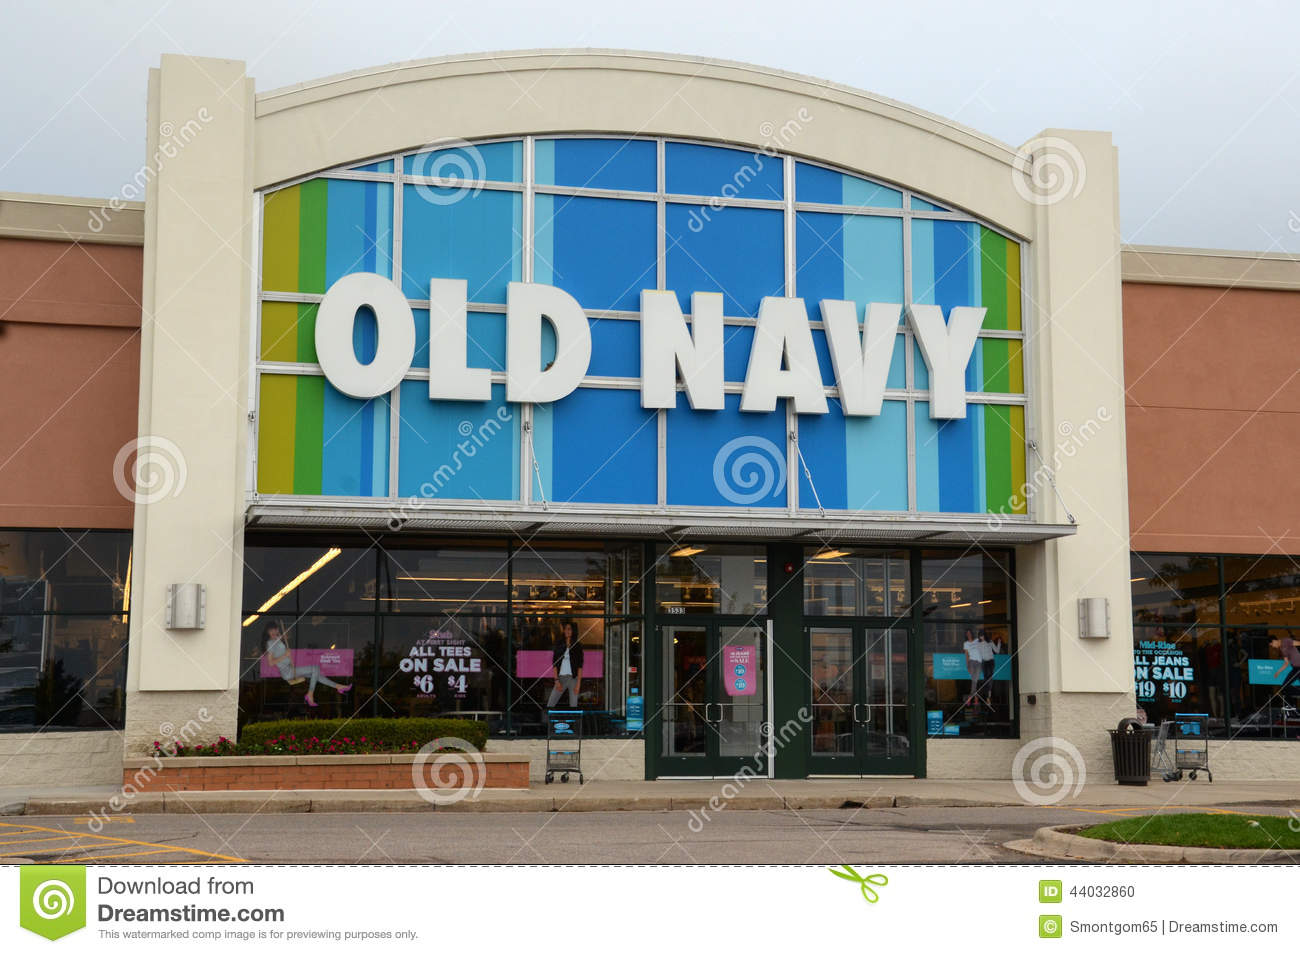 Old Navy is a clothing and accessories store owned by Gap Inc. Founded in in San Francisco, California. The Gap Inc. brands include Gap, Banana Republic and Athleta. Old Navy has more than 1, locations in the United States (and Canada) and a website that features a wide variety of top-rated styles for men, women, boys, girls, toddler girls and toddler boys%().